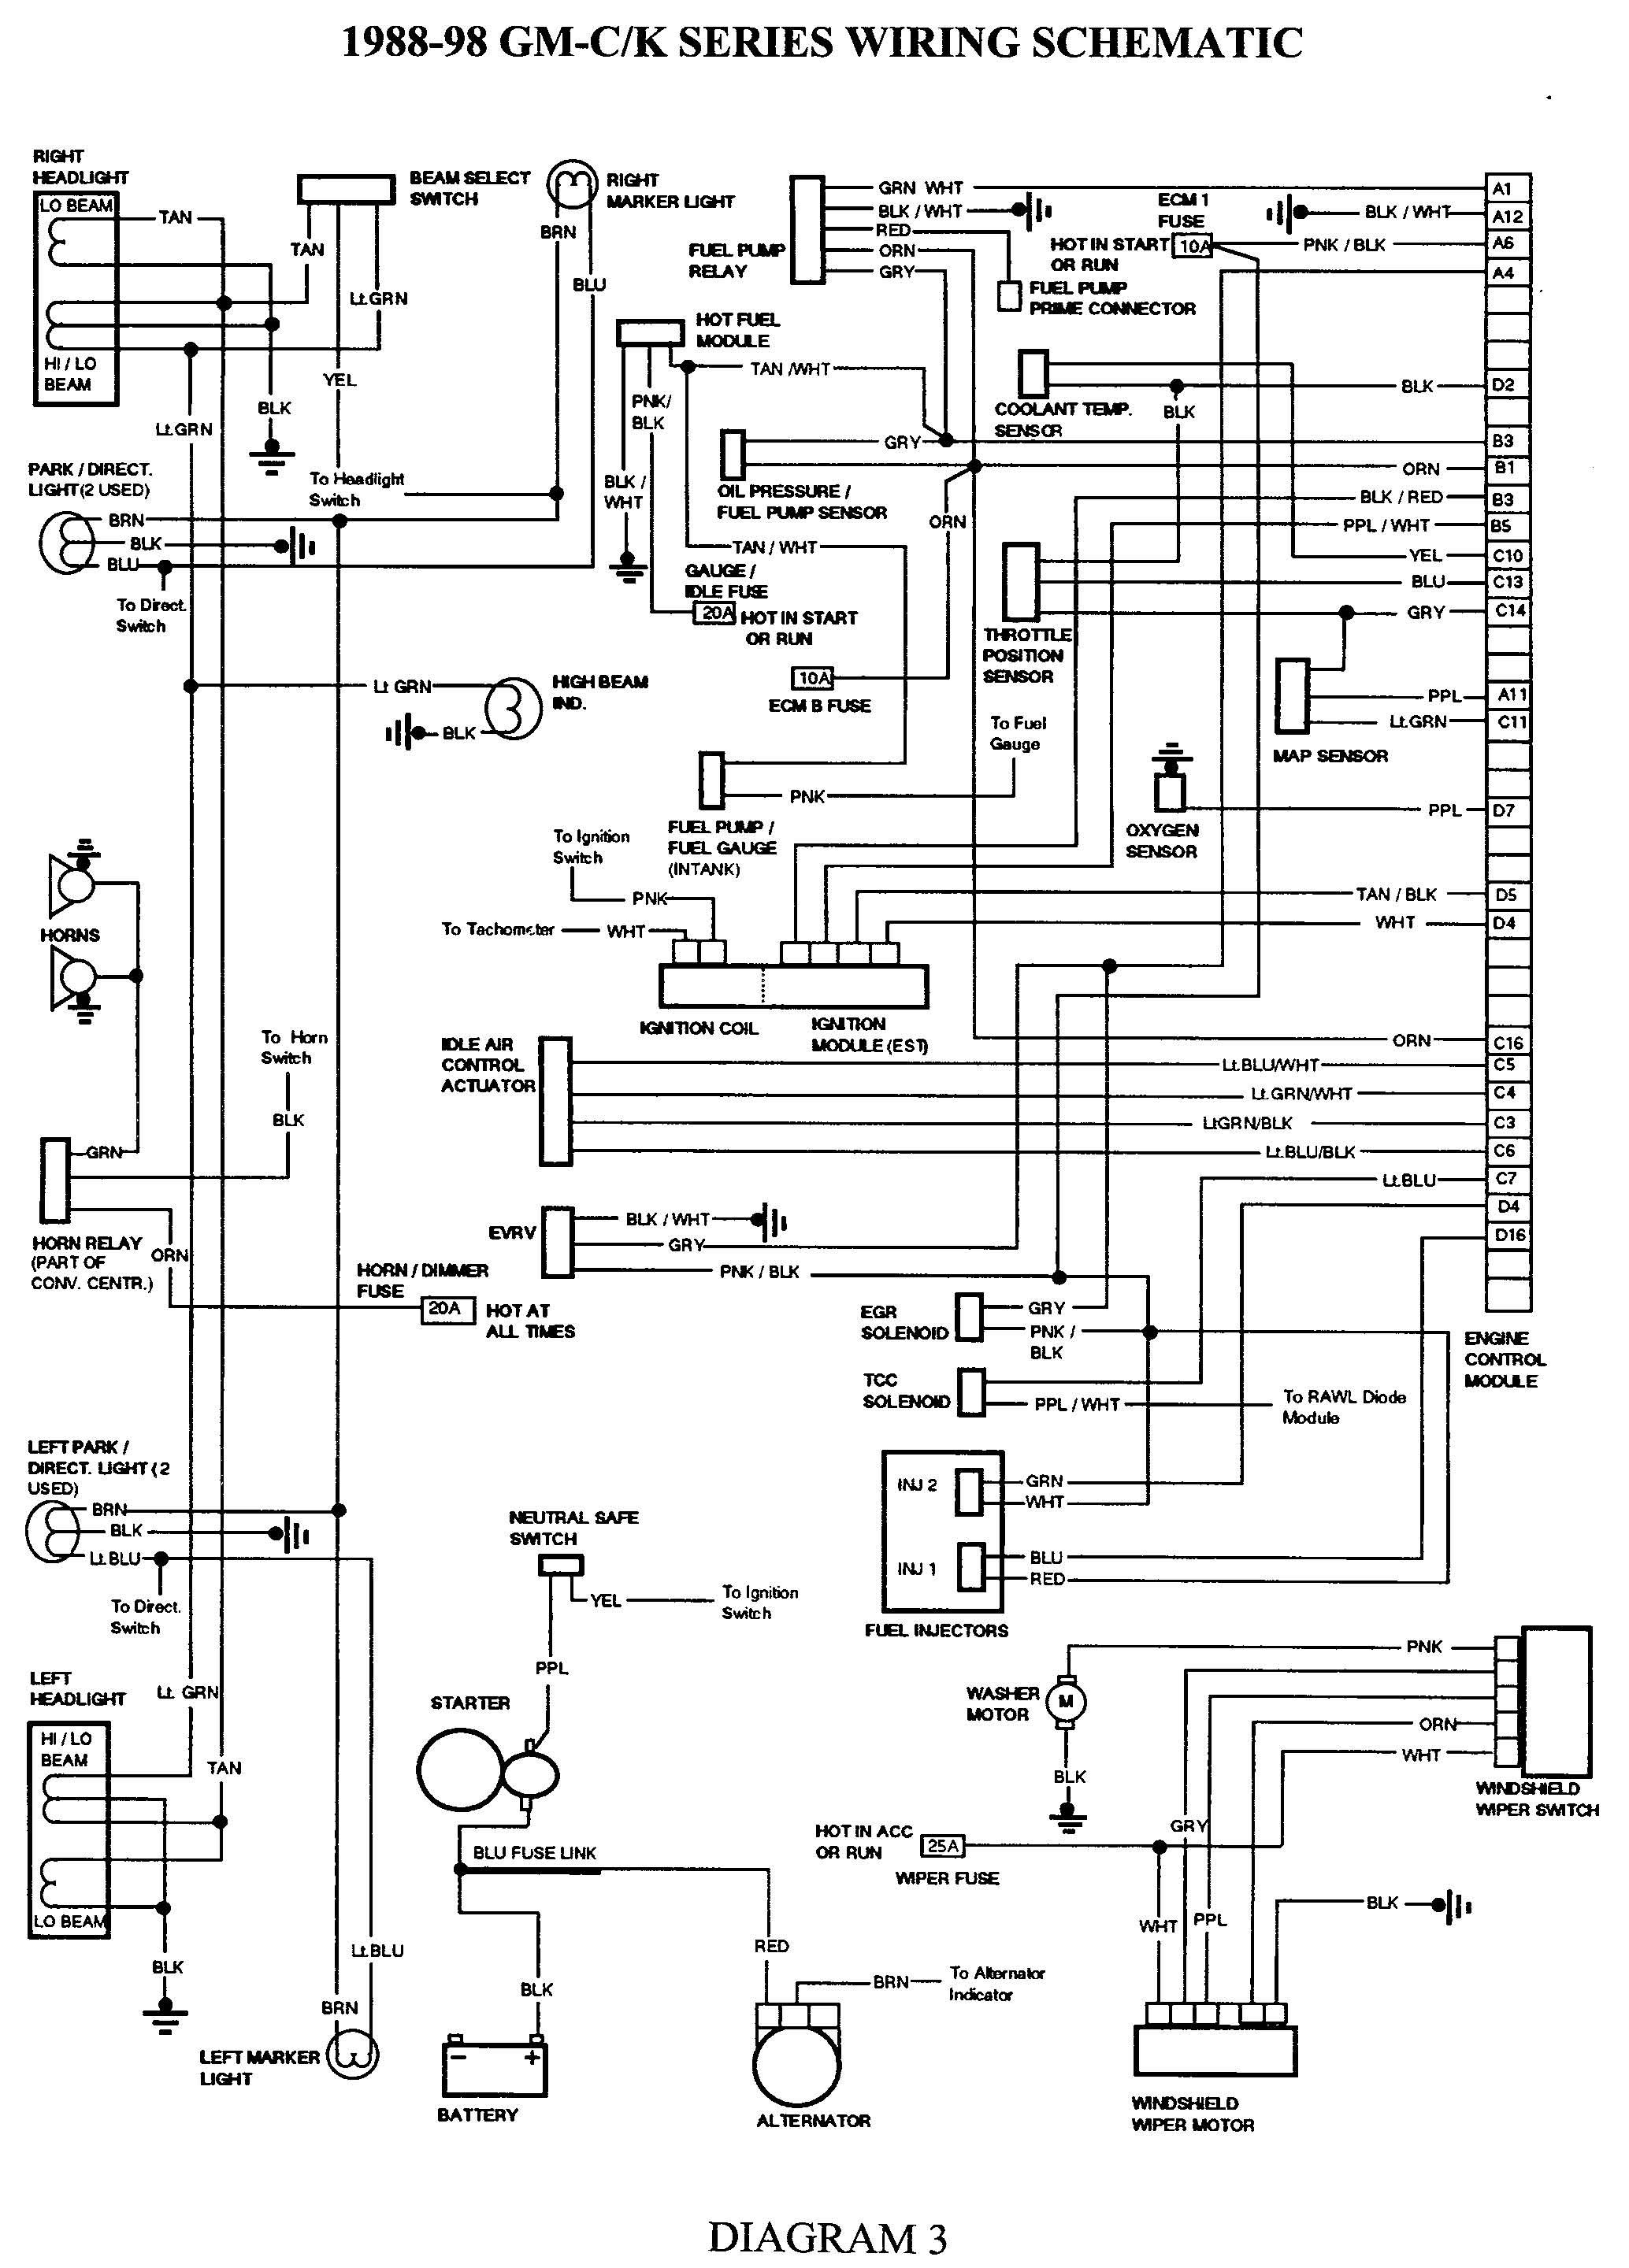 89 k5 blazer wiring diagram - wiring diagrams productive -  productive.auditoriumperugia.it  auditoriumperugia.it